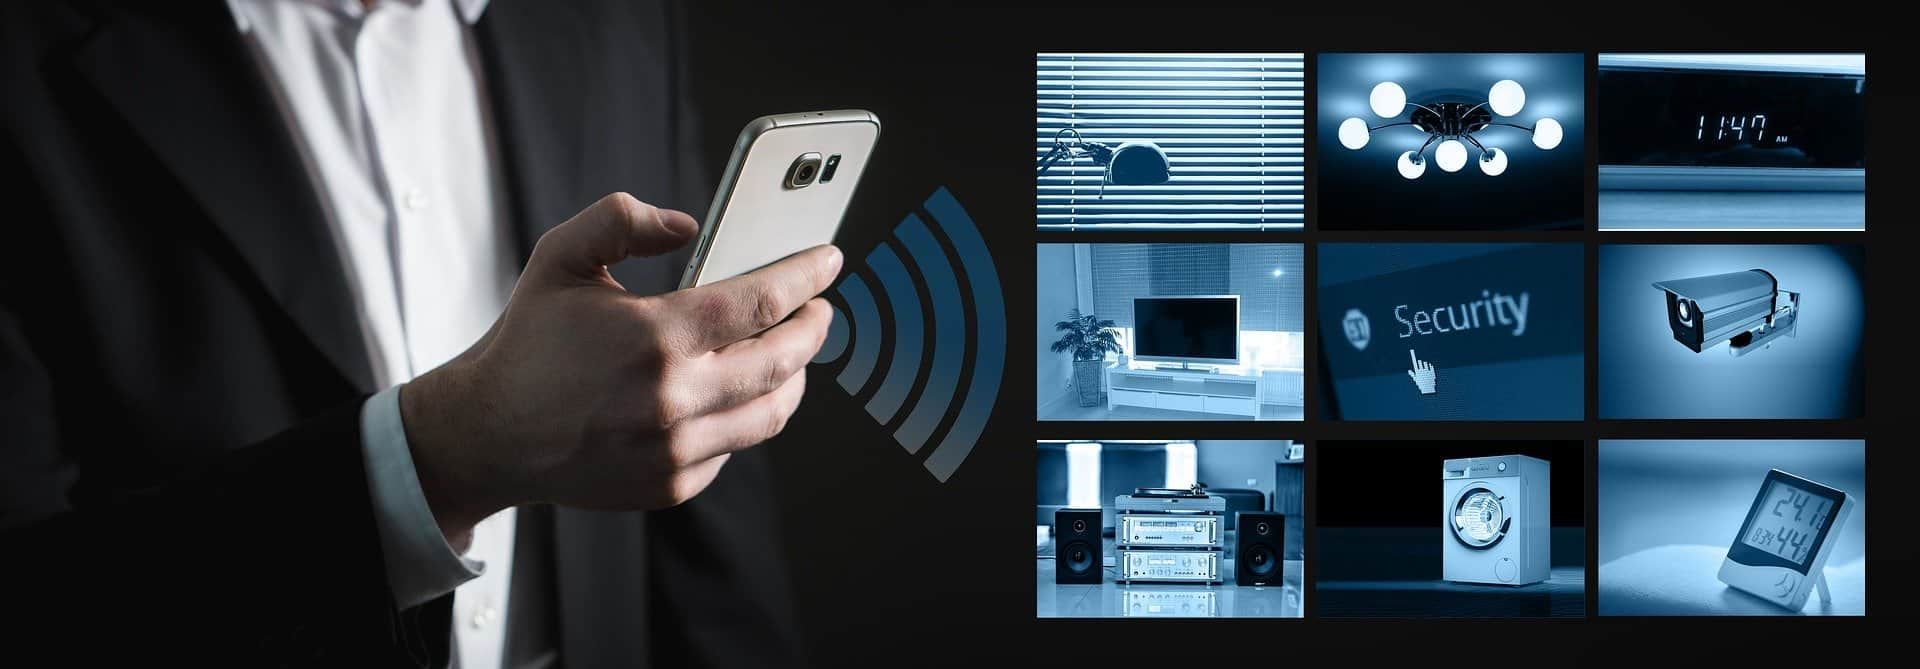 Security Cameras as Sensors For Smart Building Automation